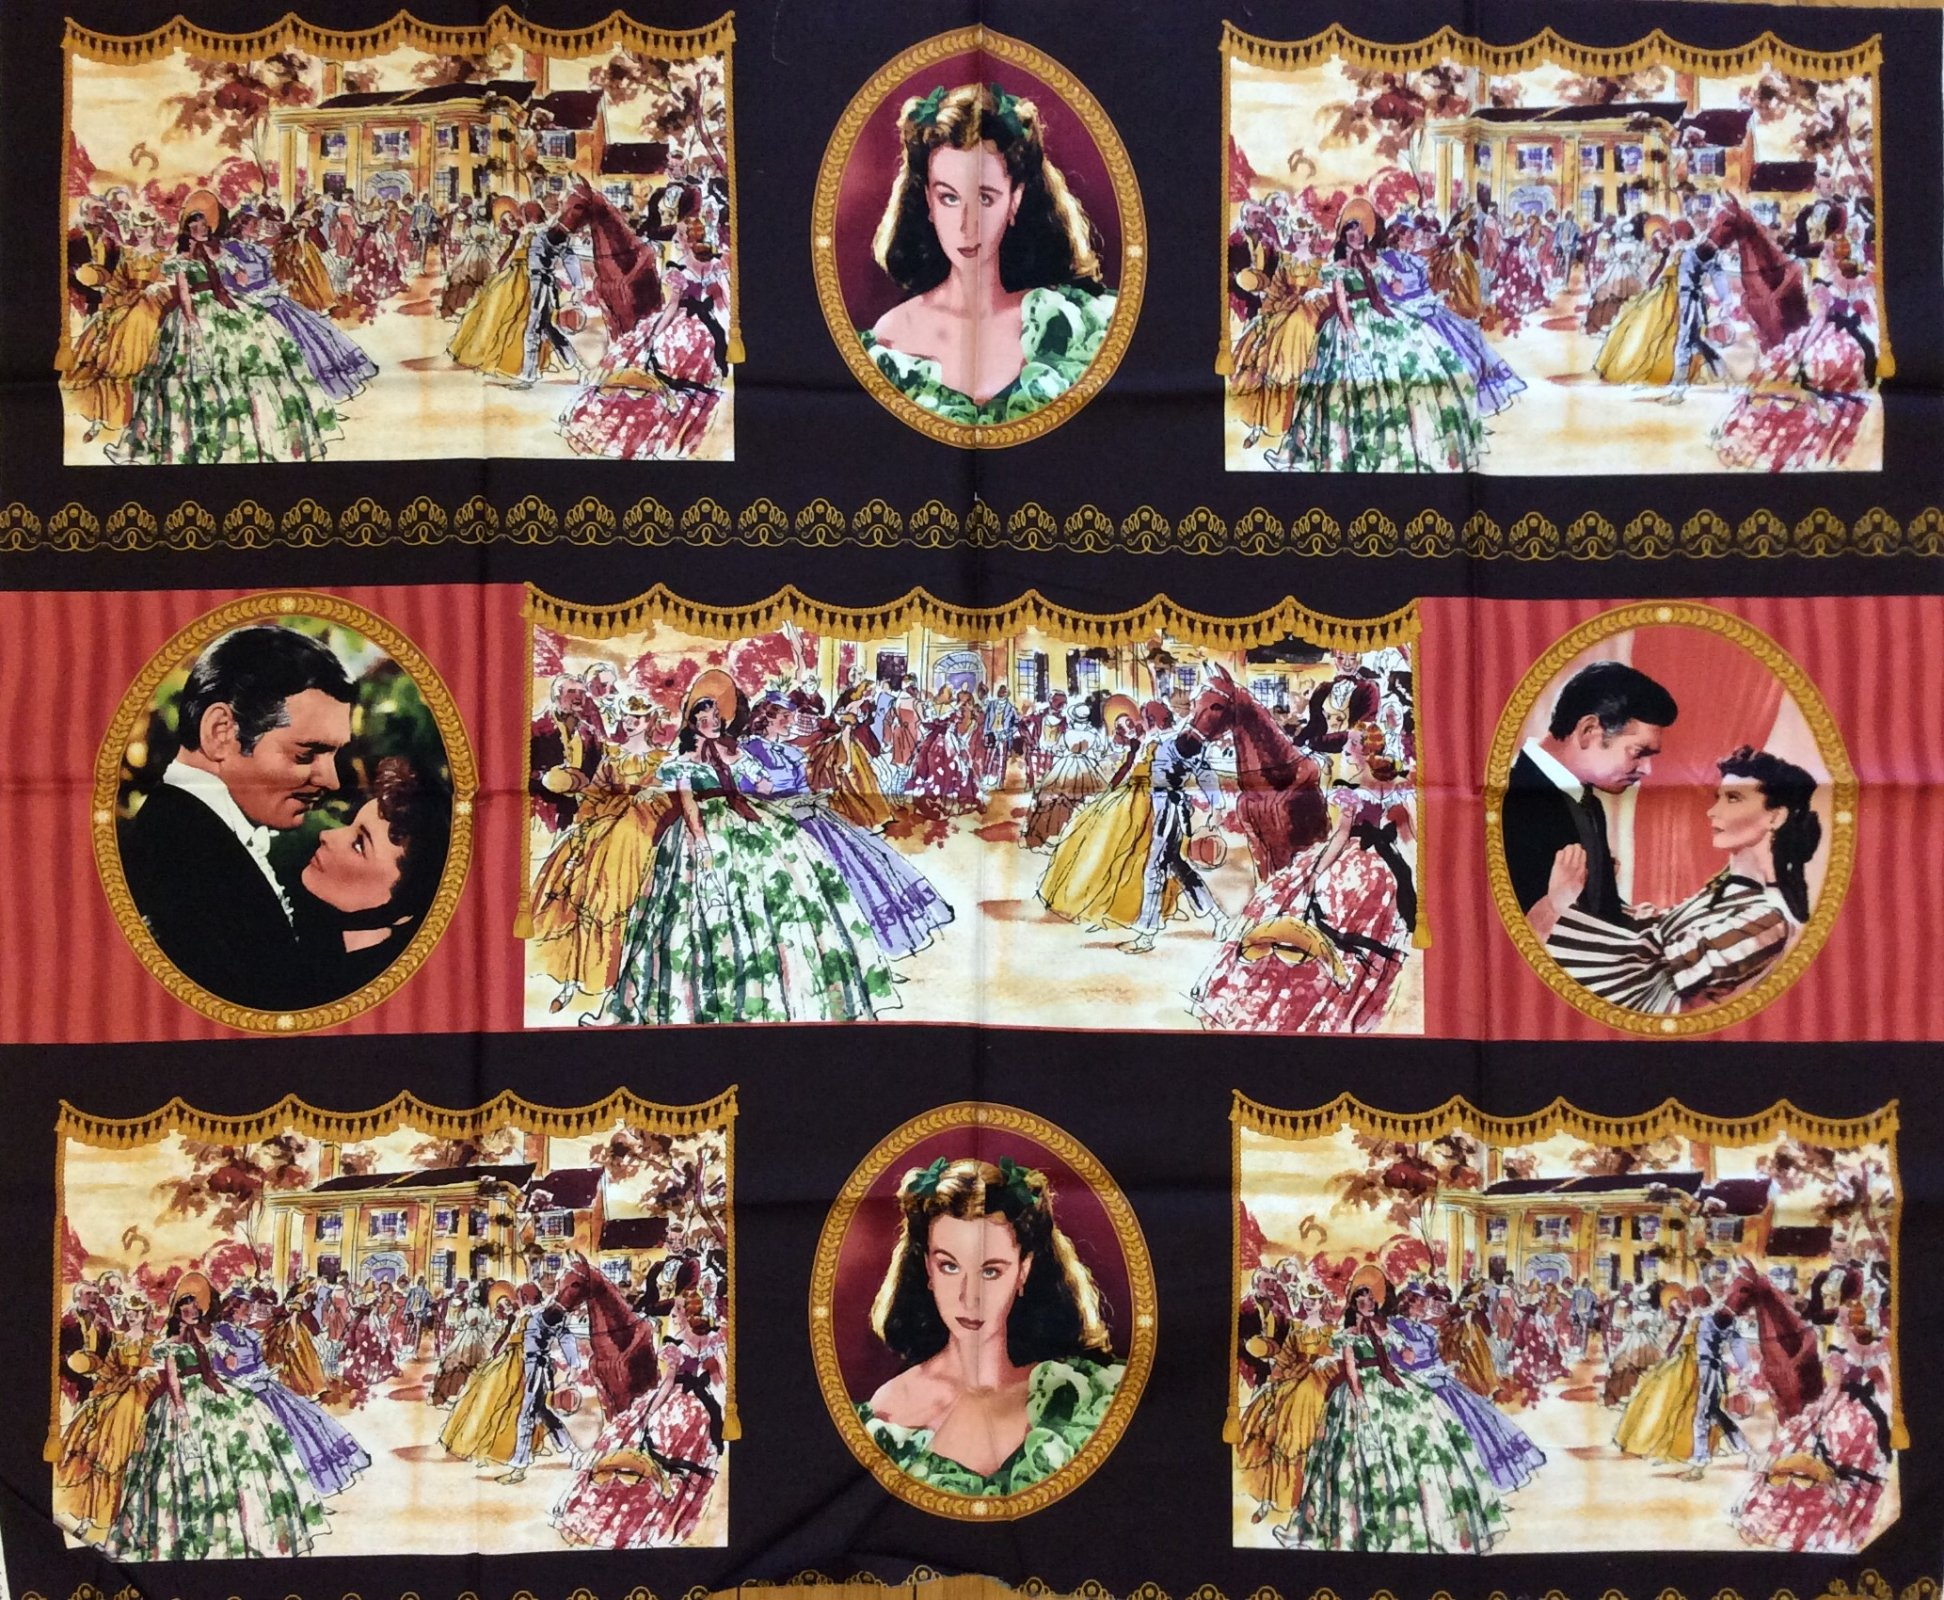 Rare, Out of Print! Last Piece! Gone With the Wind Clark Gable Vivien Leigh Retro Movie Star Cotton fabric Quilt fabric Panel R80